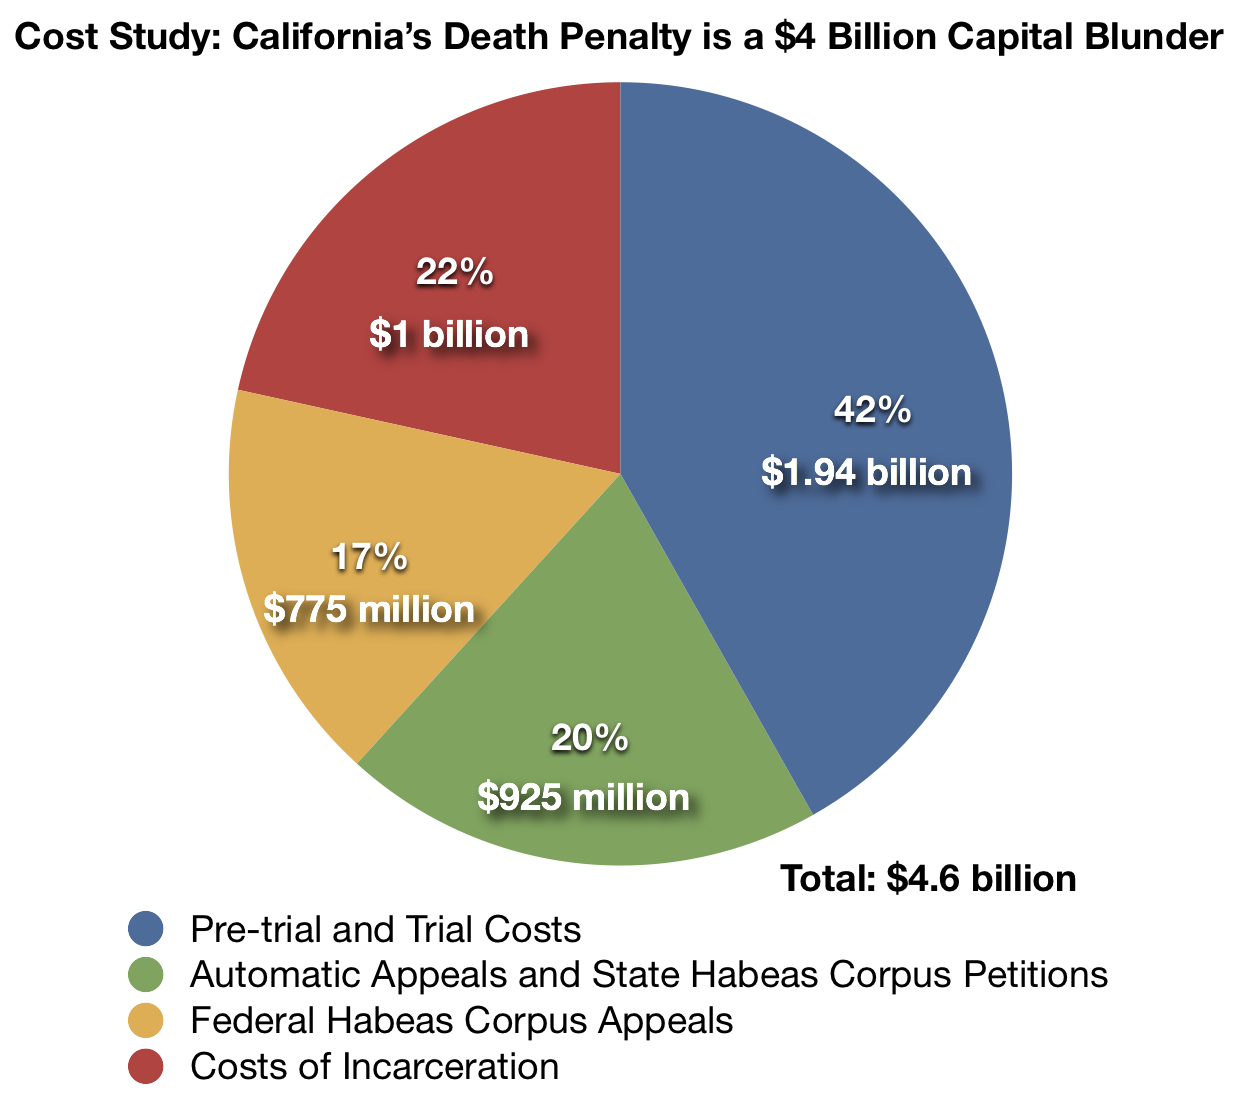 california cost study death penalty information center breakdown of costs in california s death penalty system